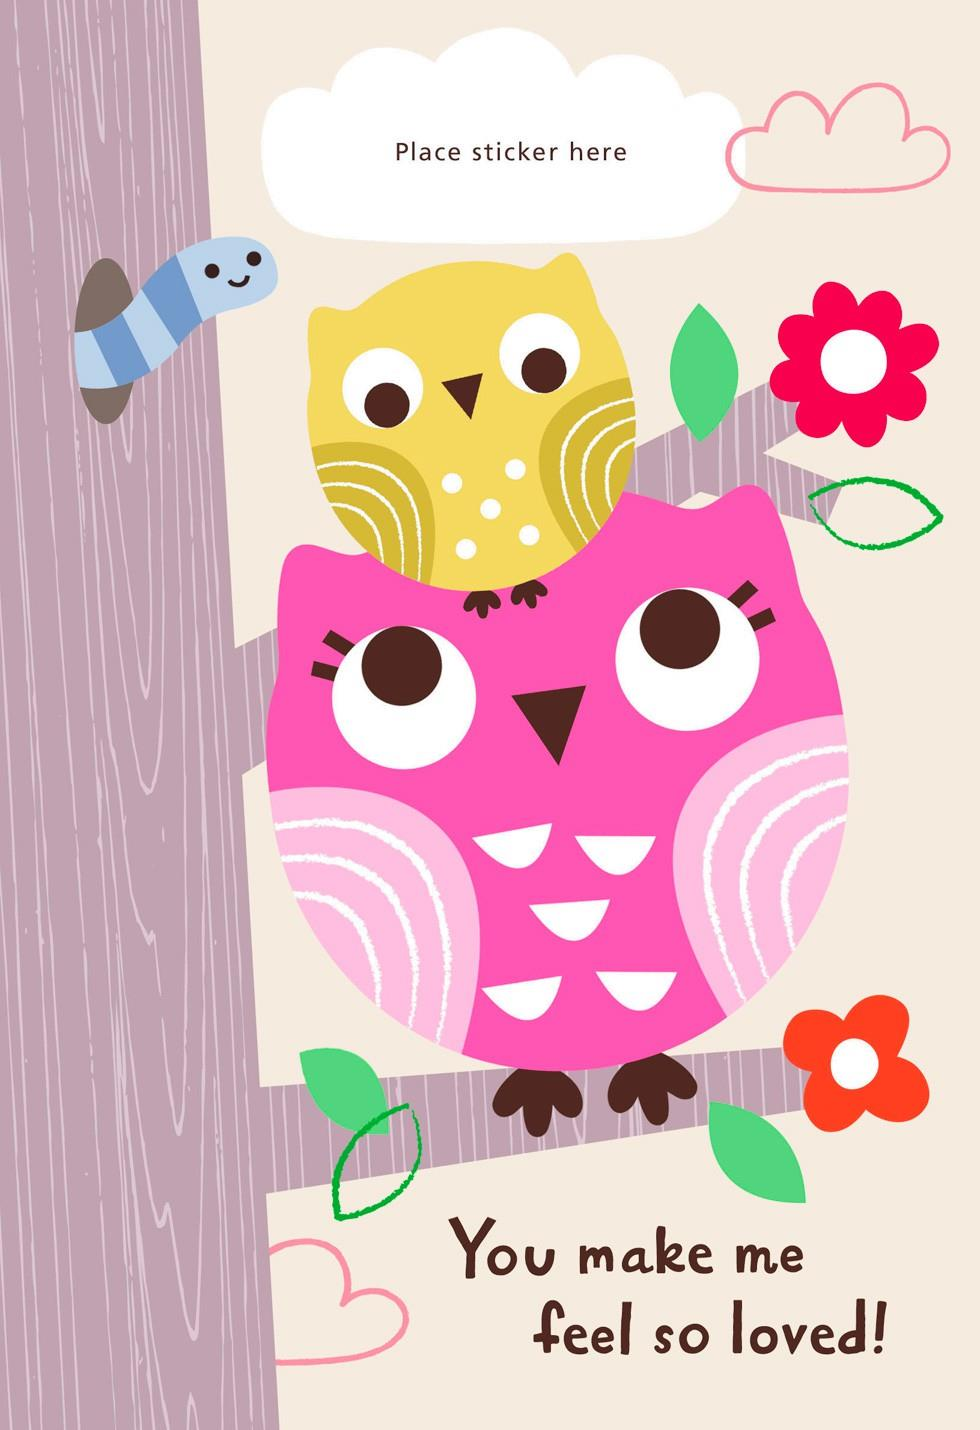 Mothers day cards hallmark two owls customizable mothers day card for grandma kristyandbryce Images